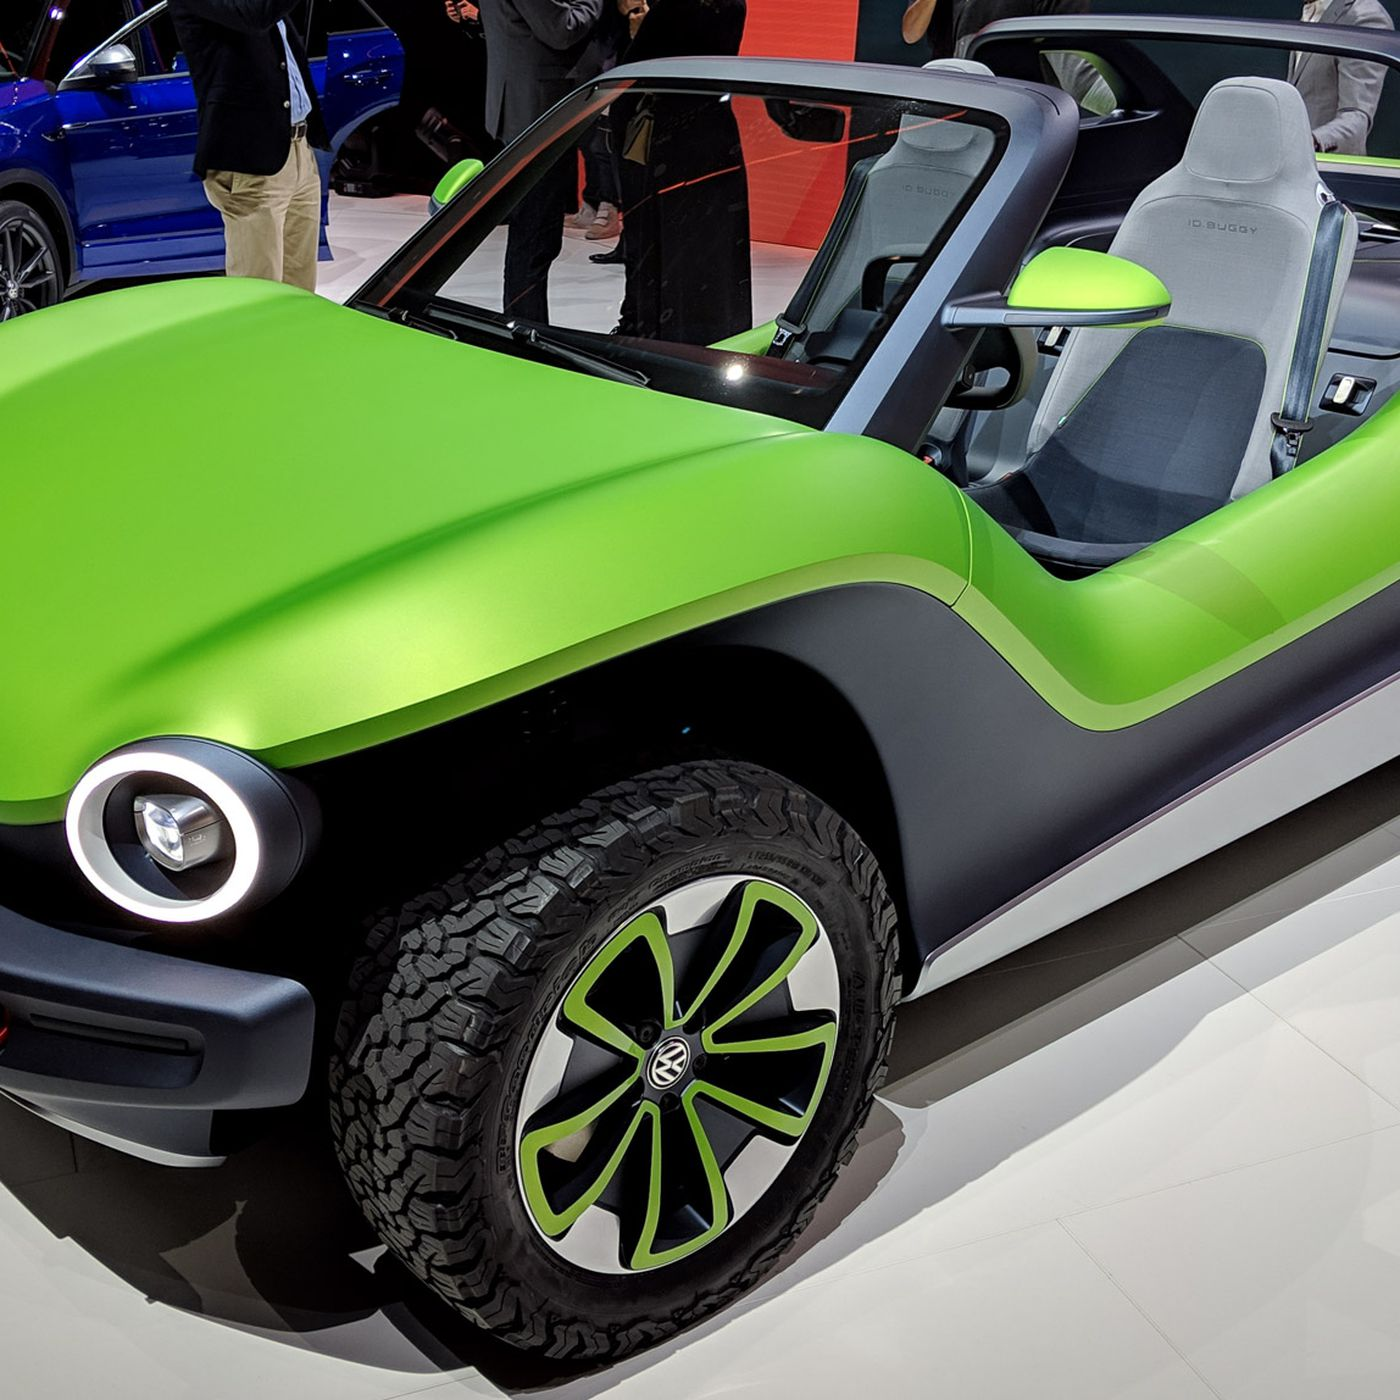 Vw Dune Buggy >> Vw Id Buggy Concept At Geneva Motor Show 2019 Technicolor